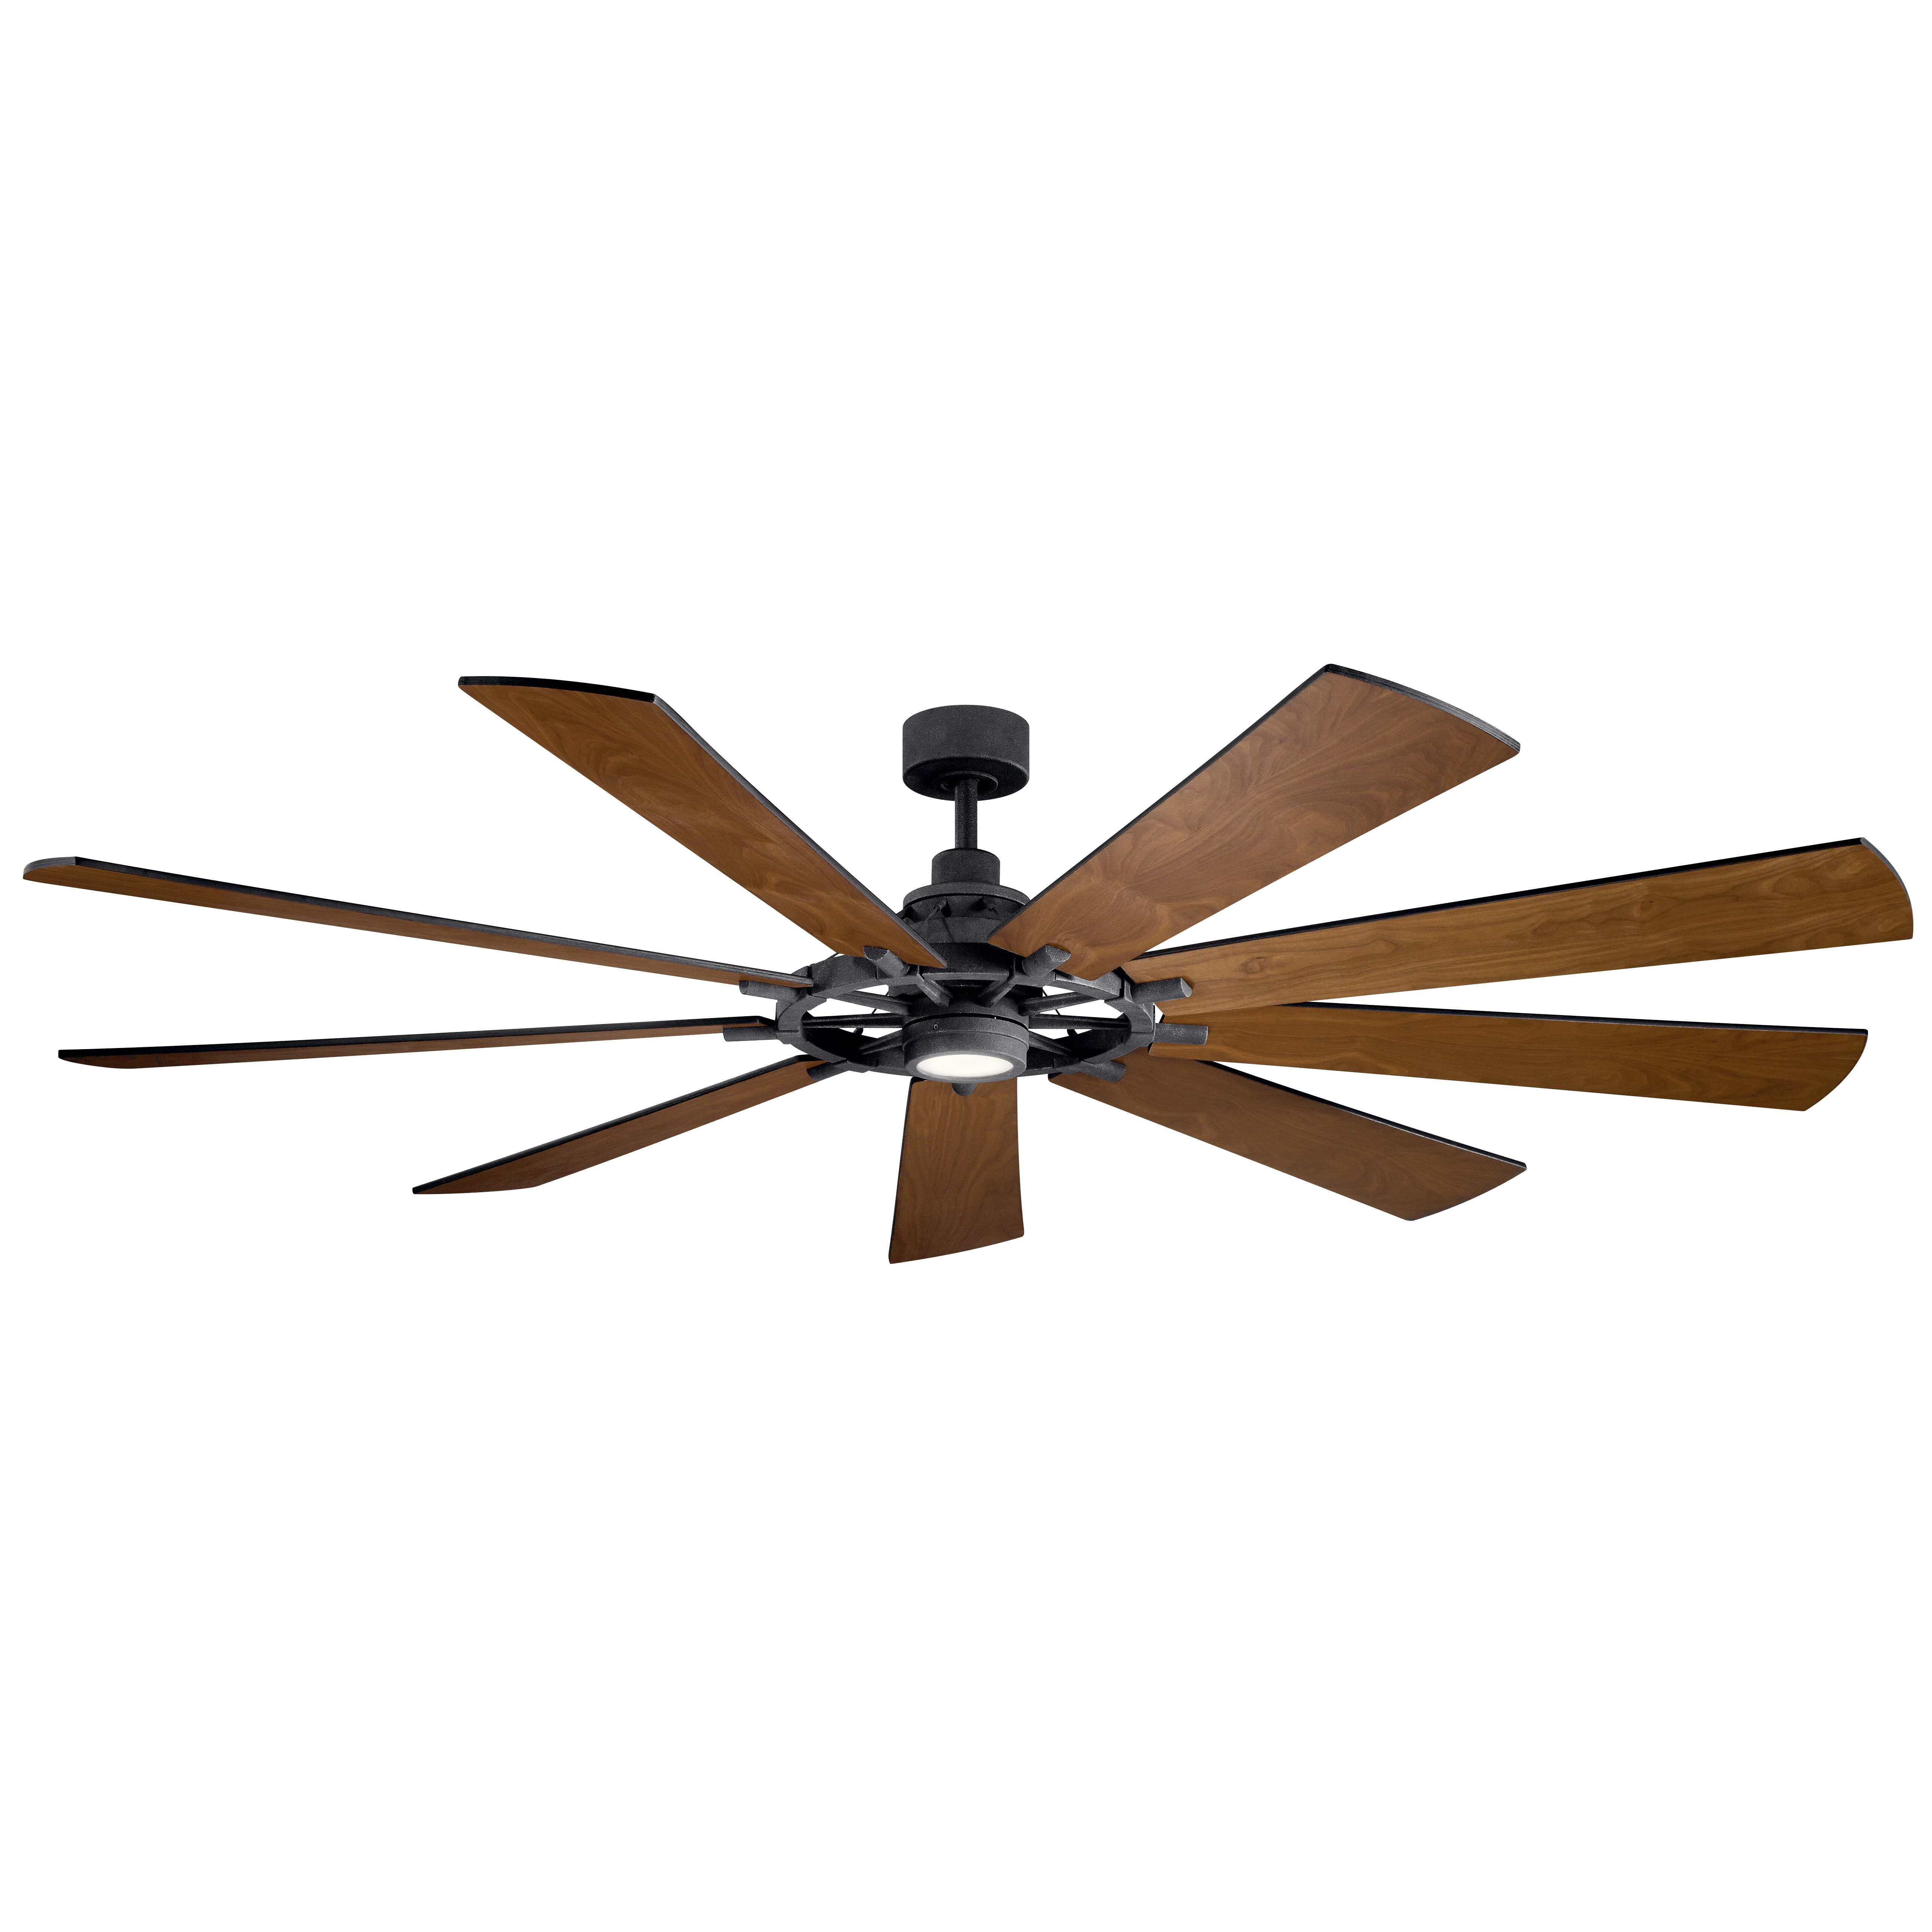 Greyleigh 85 Sophronia 9 Blade Led Windmill Ceiling Fan With Wall Control And Light Kit Included Reviews Wayfair